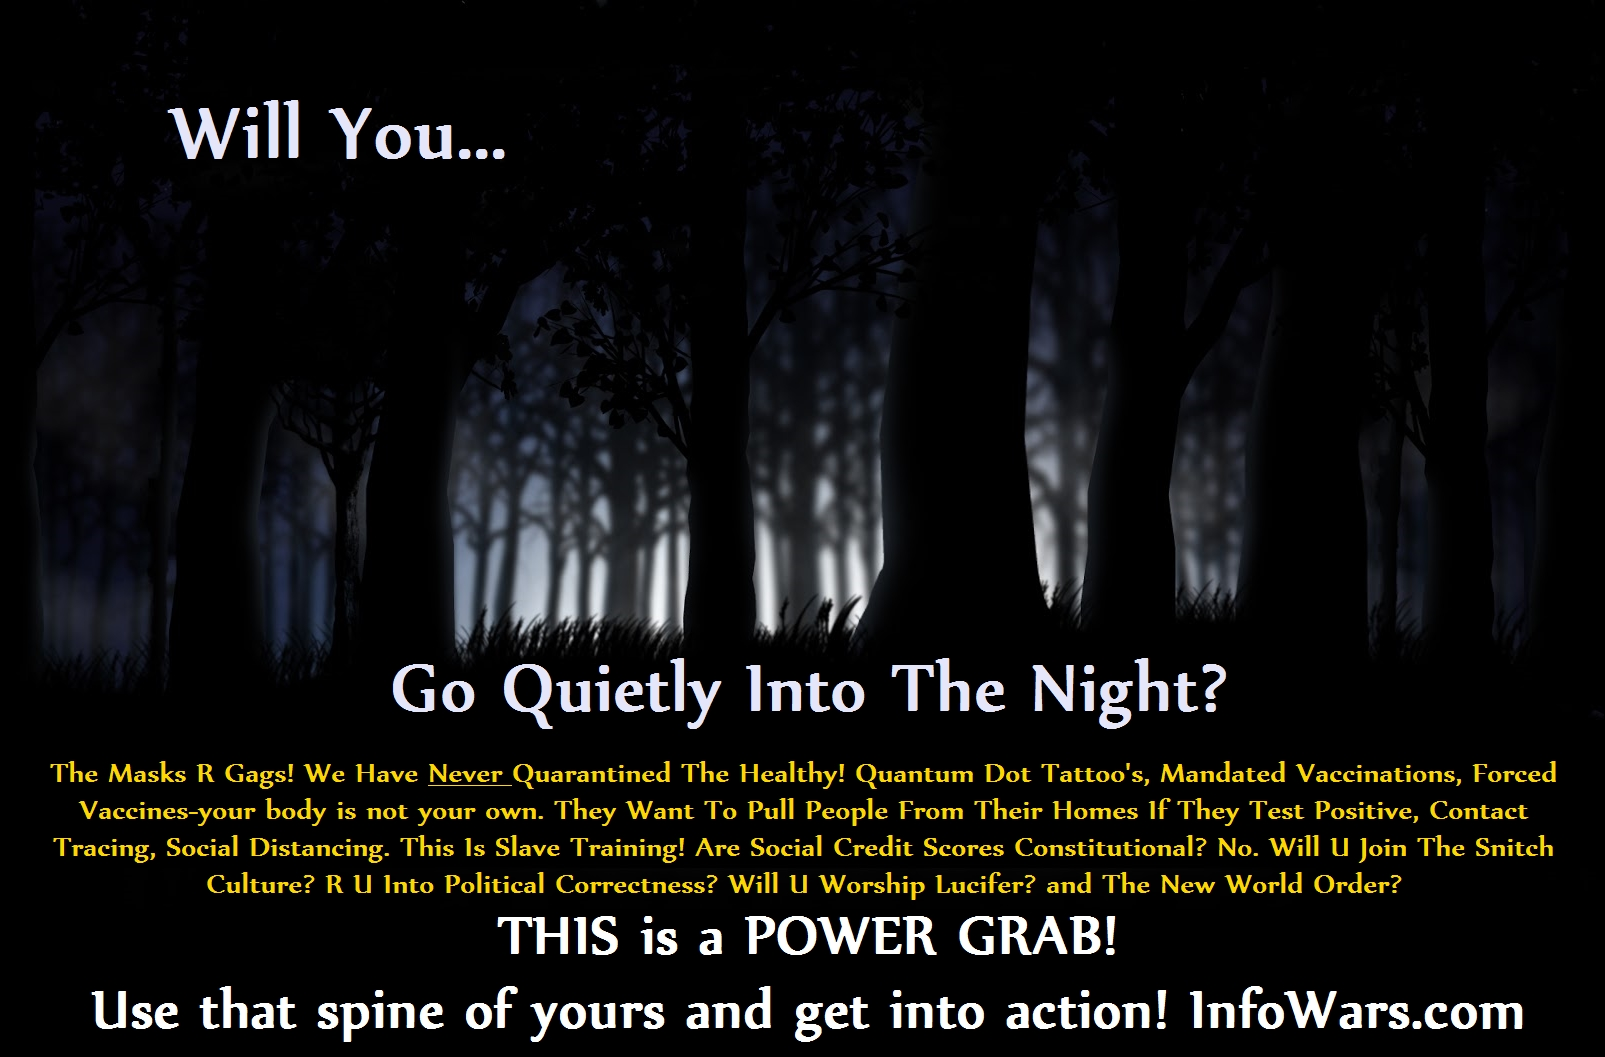 Will You Let Them Take You Quietly Into The Night?